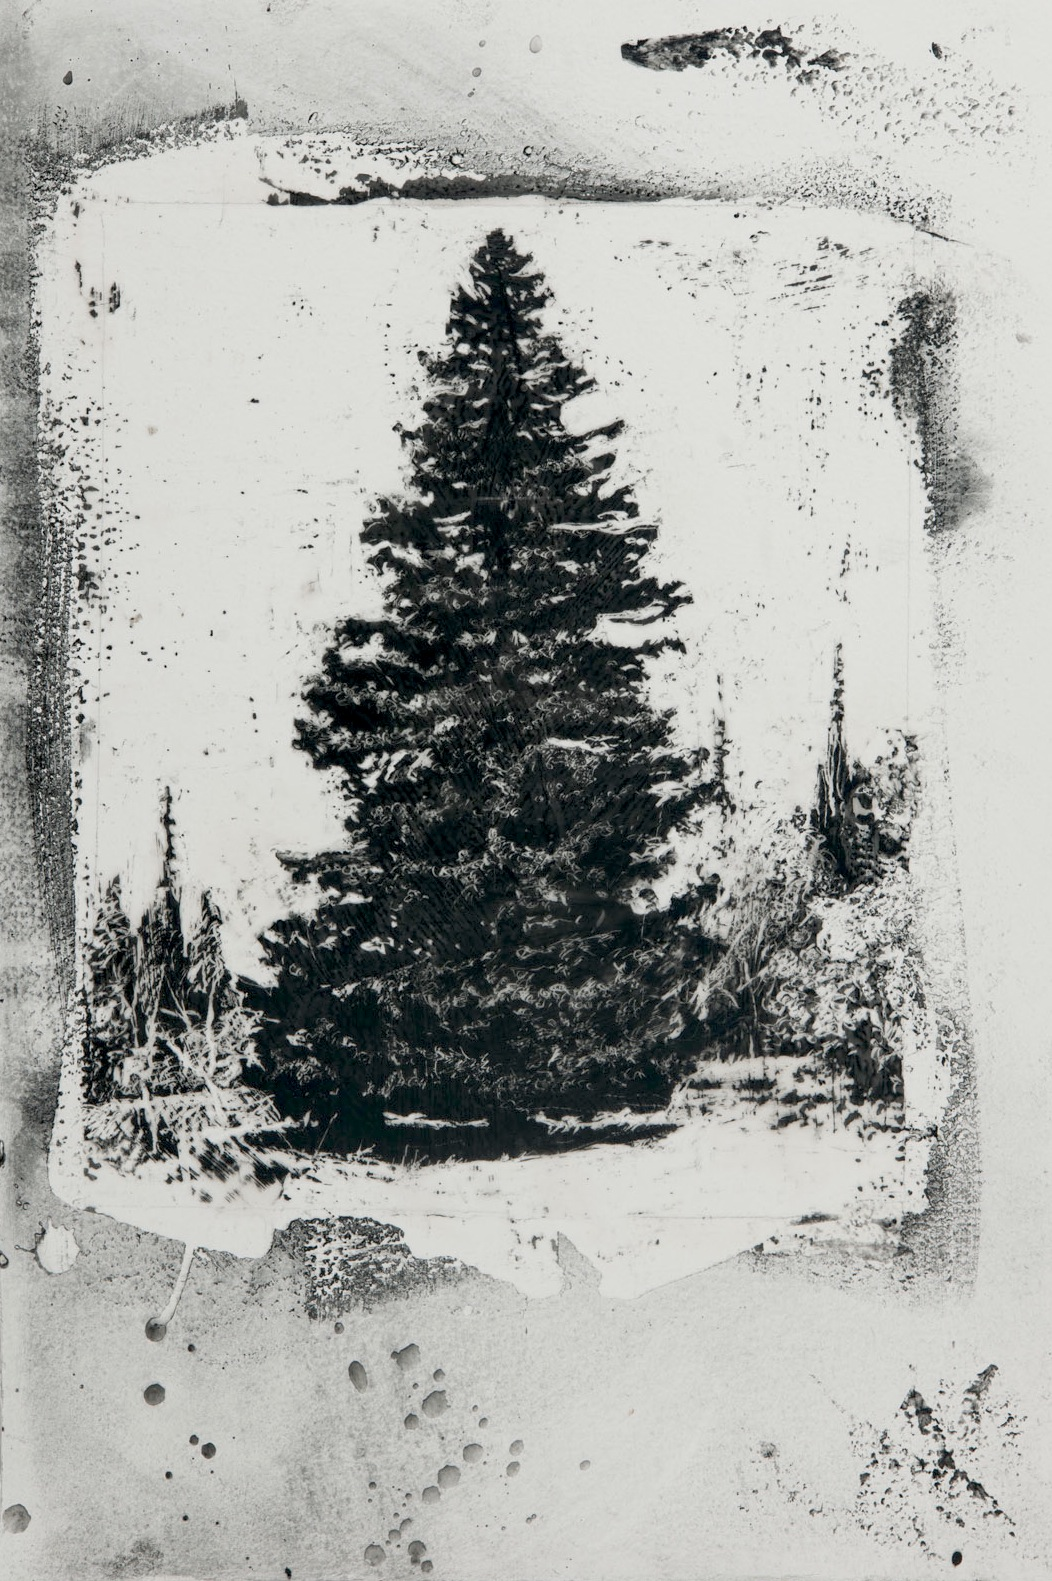 "Spruce, 24"" x 16"", charcoal and microcrystalline wax on paper, 2012"